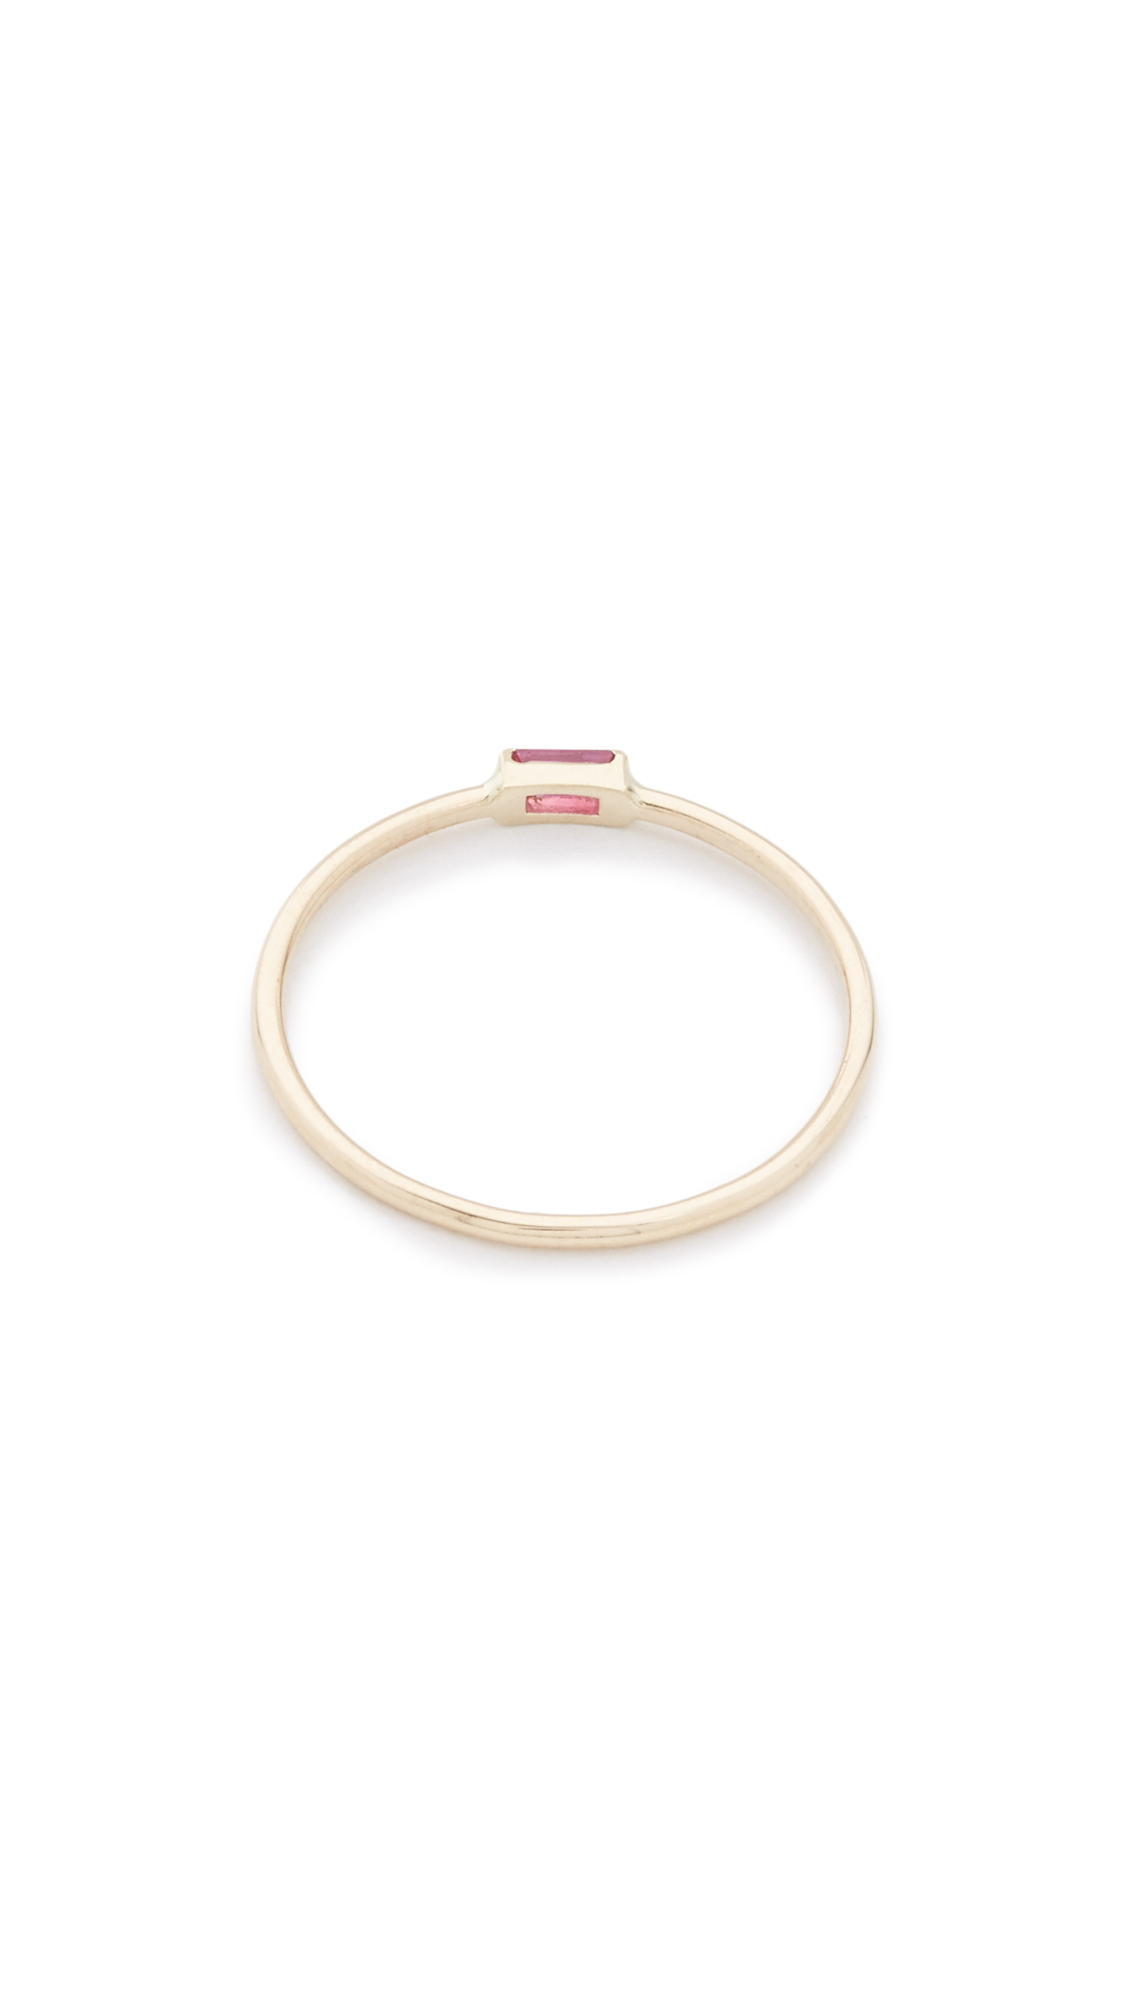 Zoe Chicco Small Horizontal Ruby Baguette Ring in Gold/Ruby (Red)